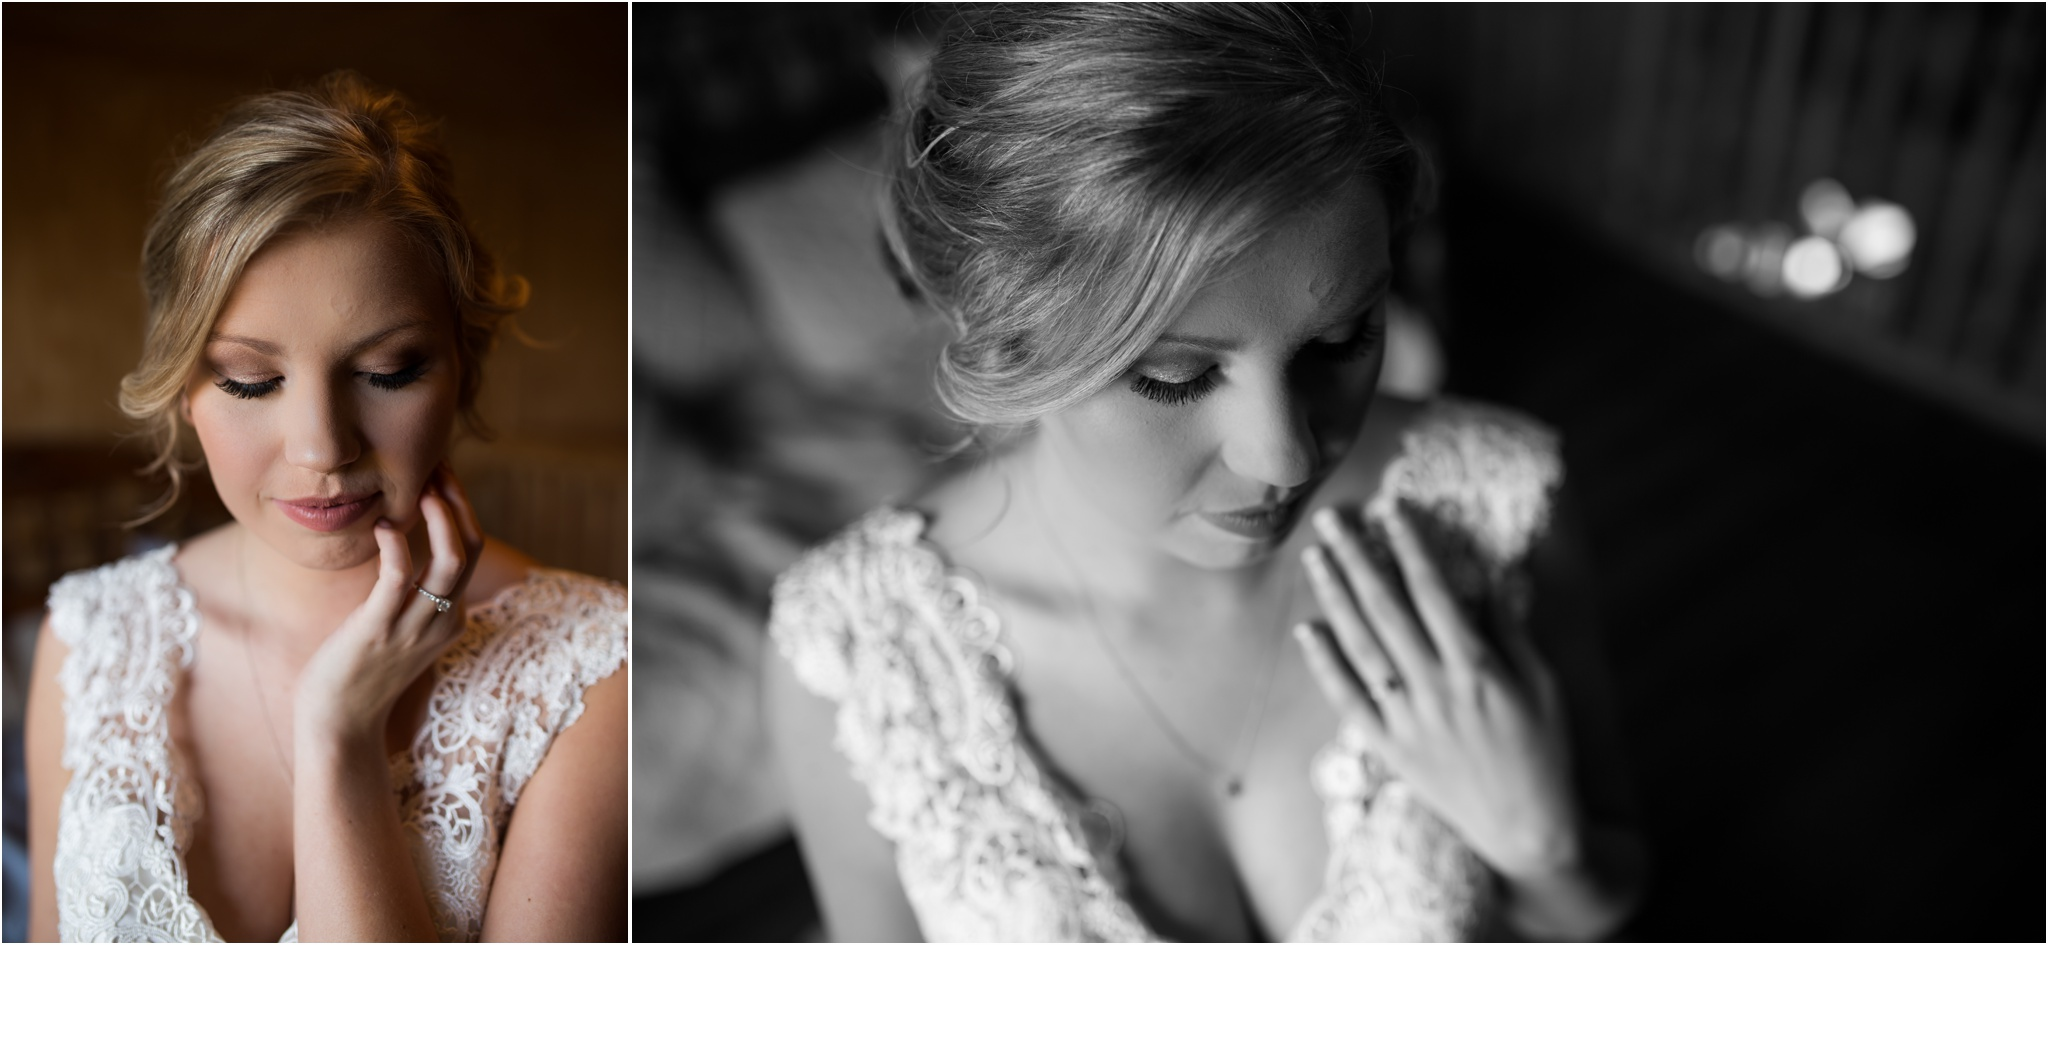 Rainey_Gregg_Photography_St._Simons_Island_Georgia_California_Wedding_Portrait_Photography_0478.jpg